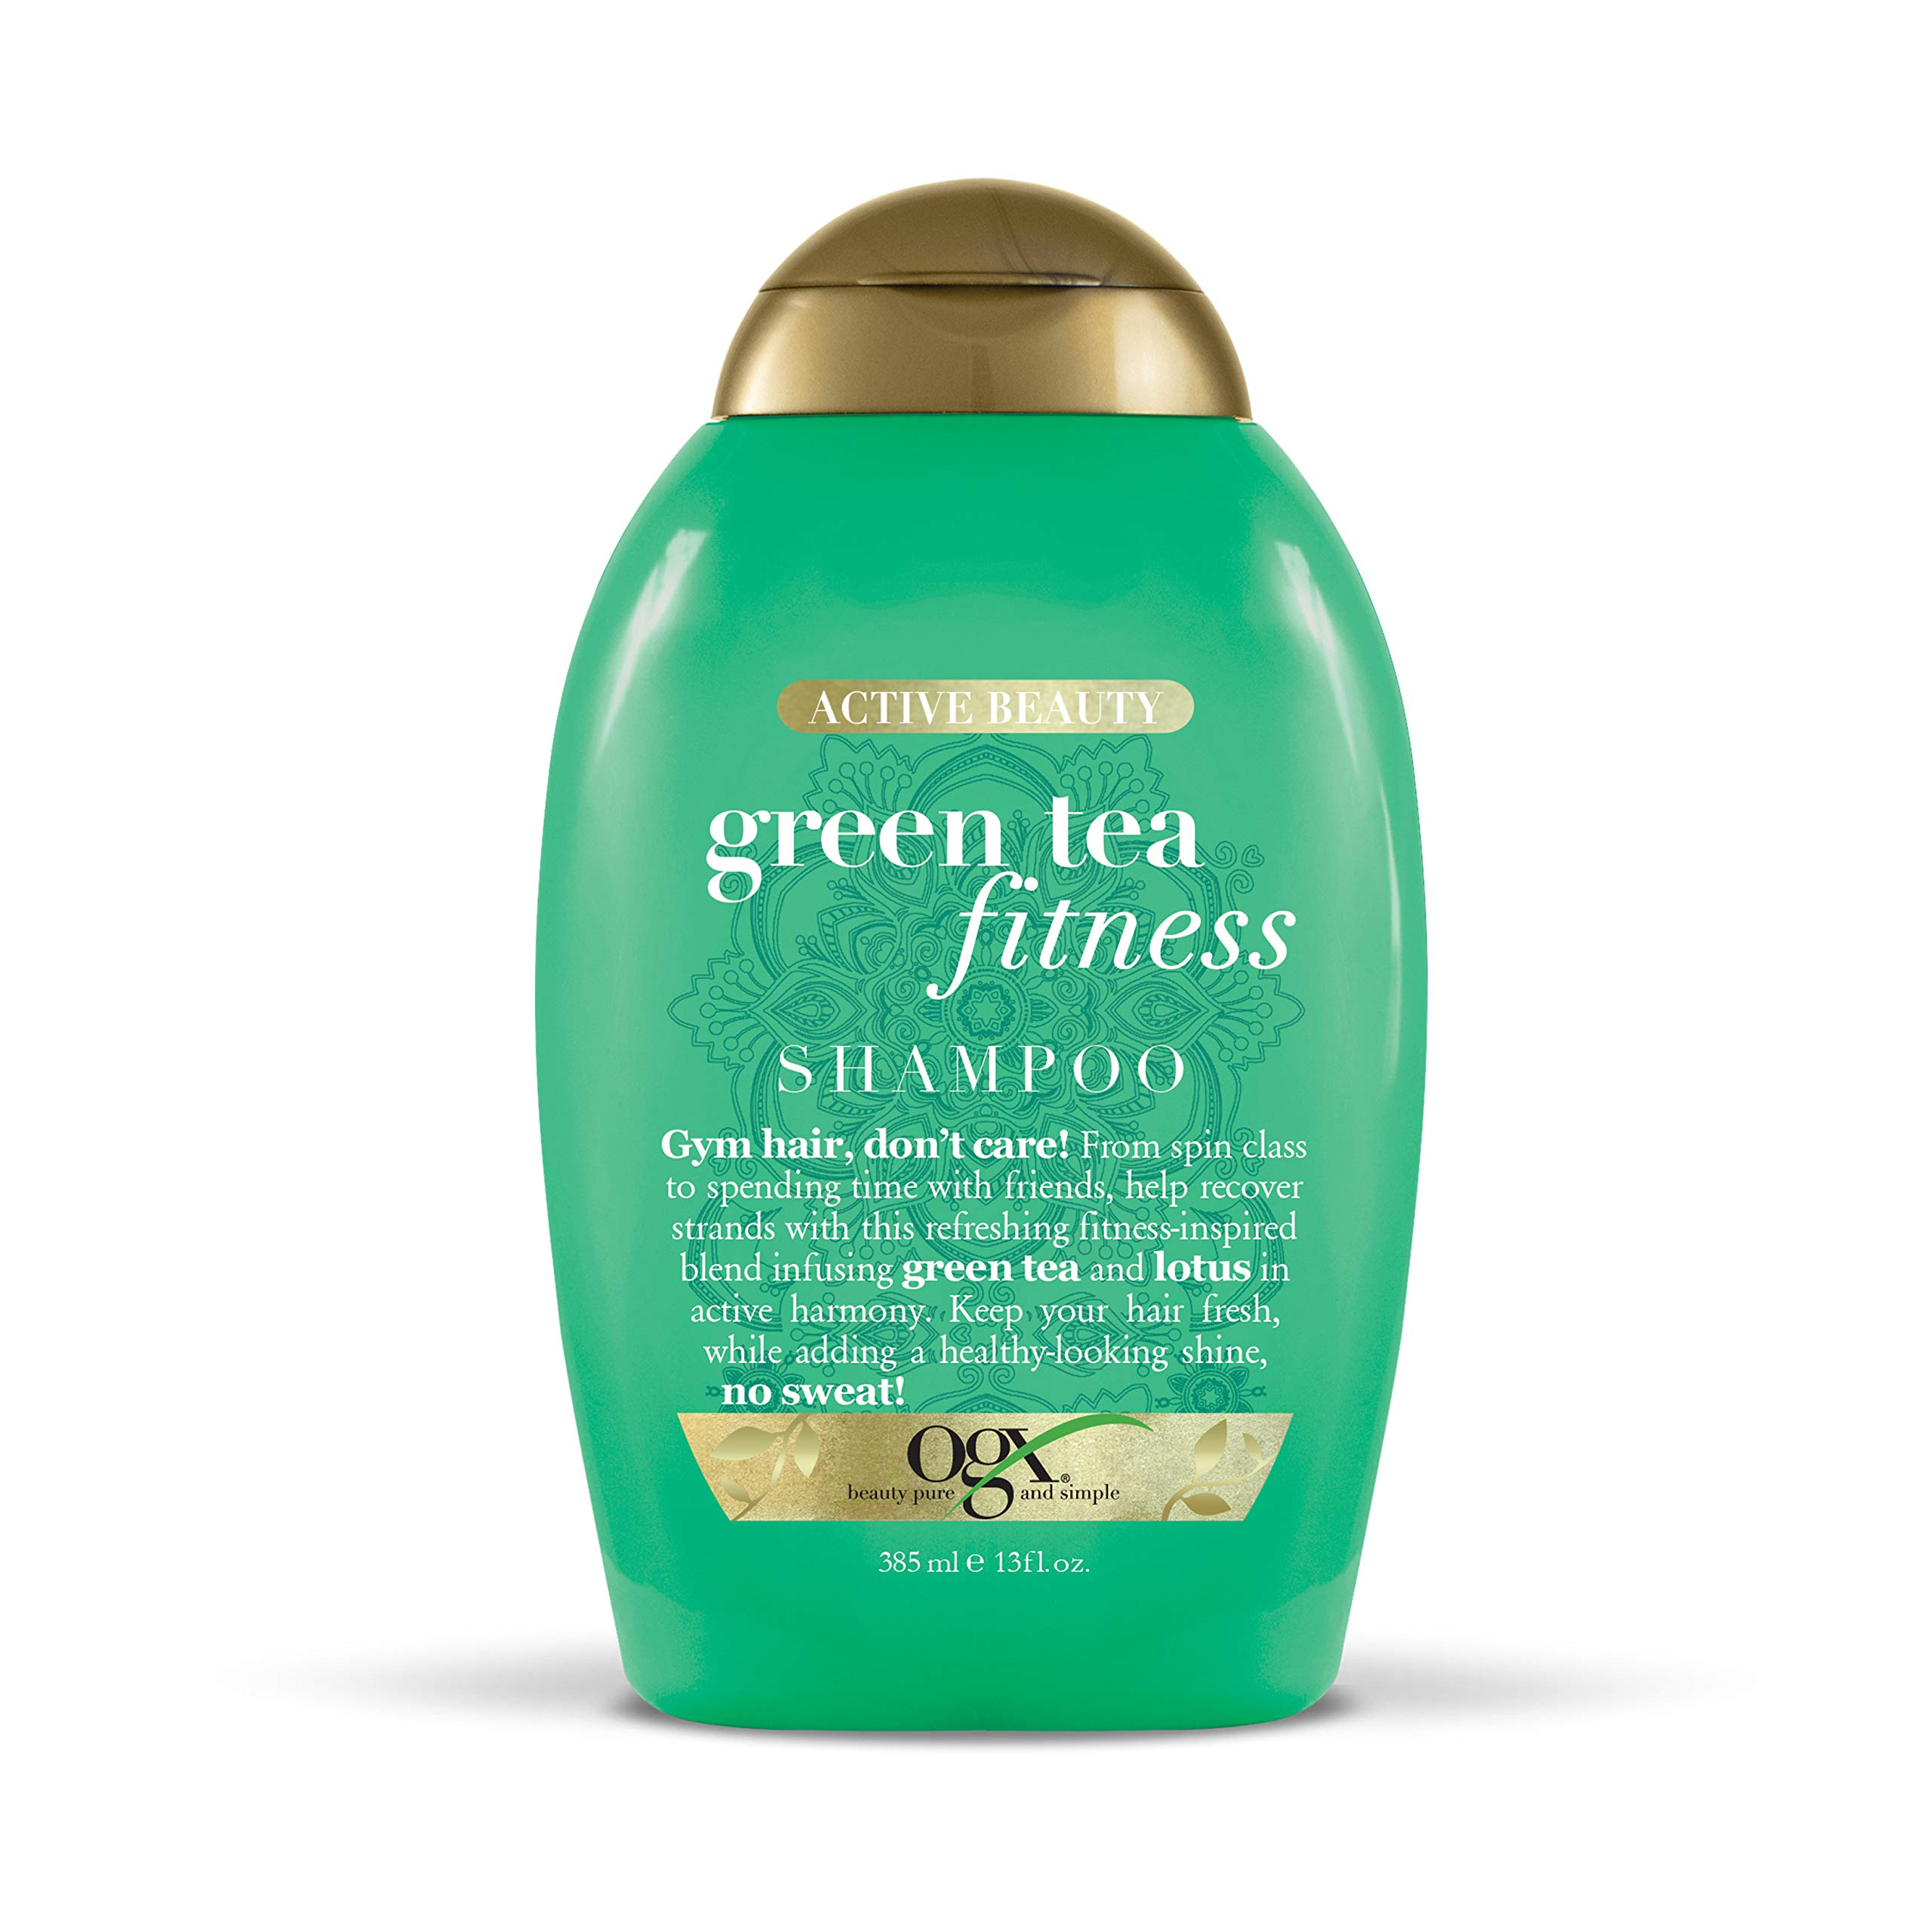 Amazon.com: OGX Active Beauty Green Tea Fitness Dry